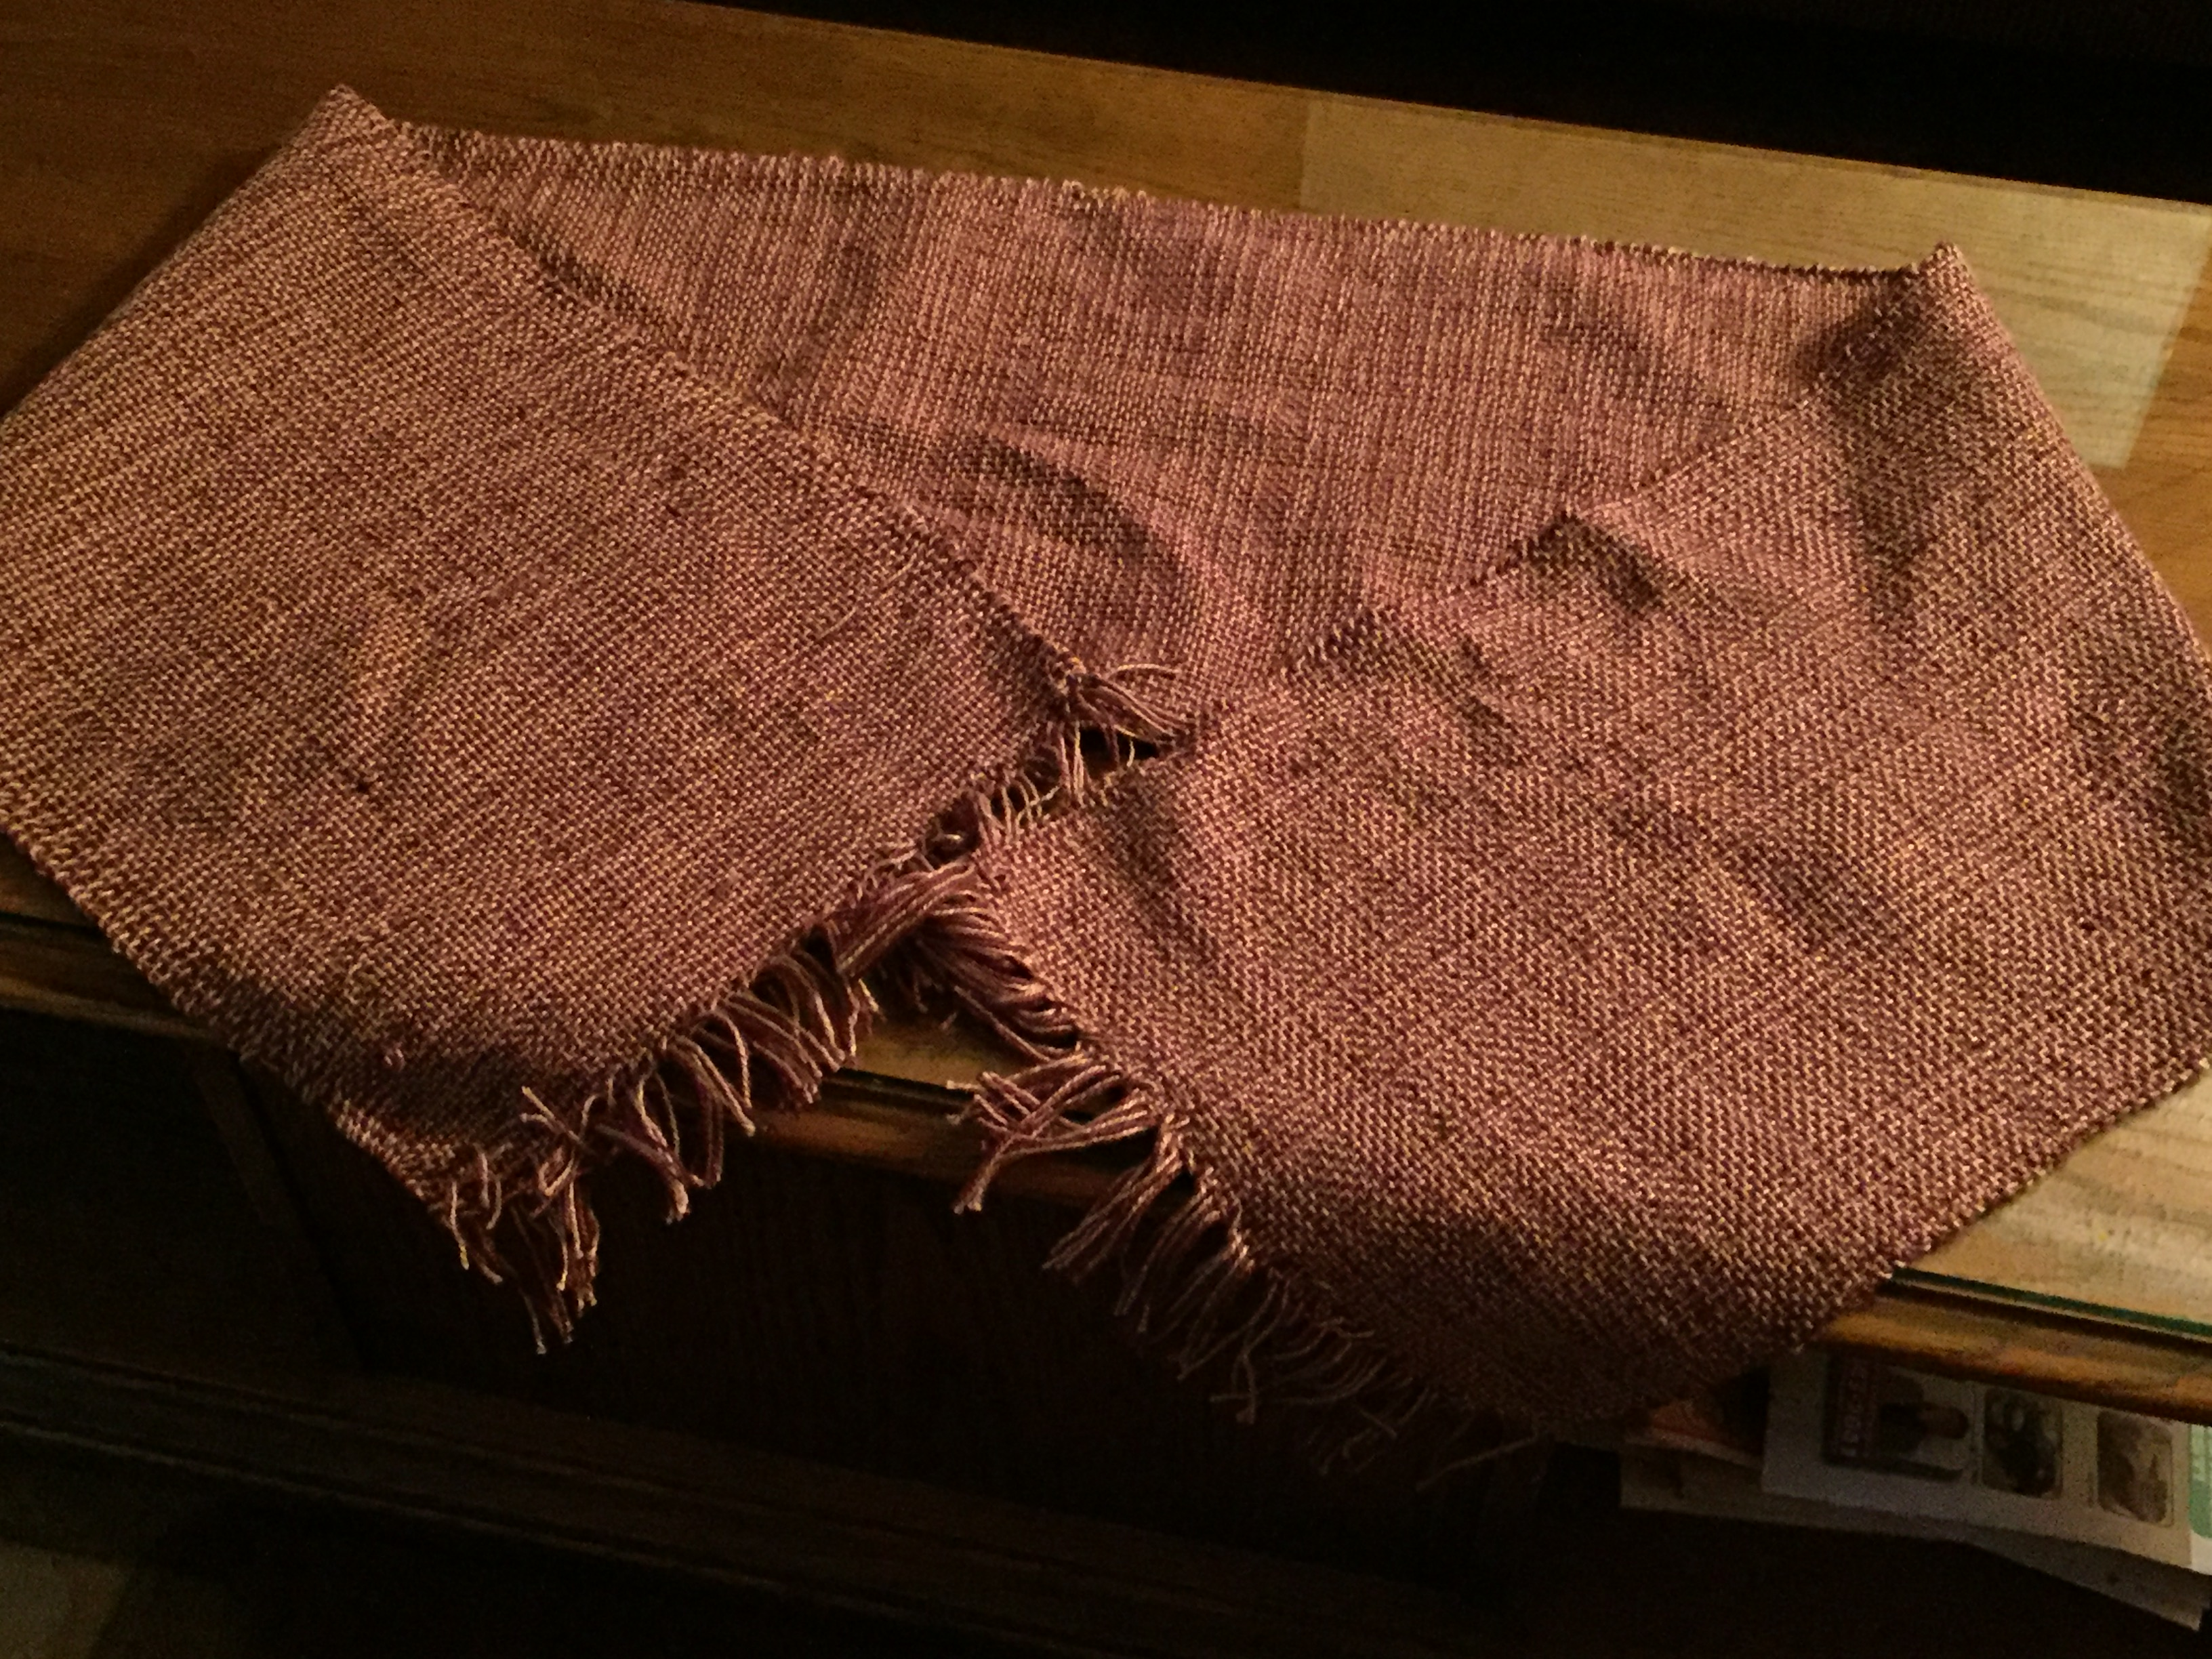 Weaving a rigid heddle table runner requires you to be flexible about making mistakes, as was the weaver of this handwoven runner.